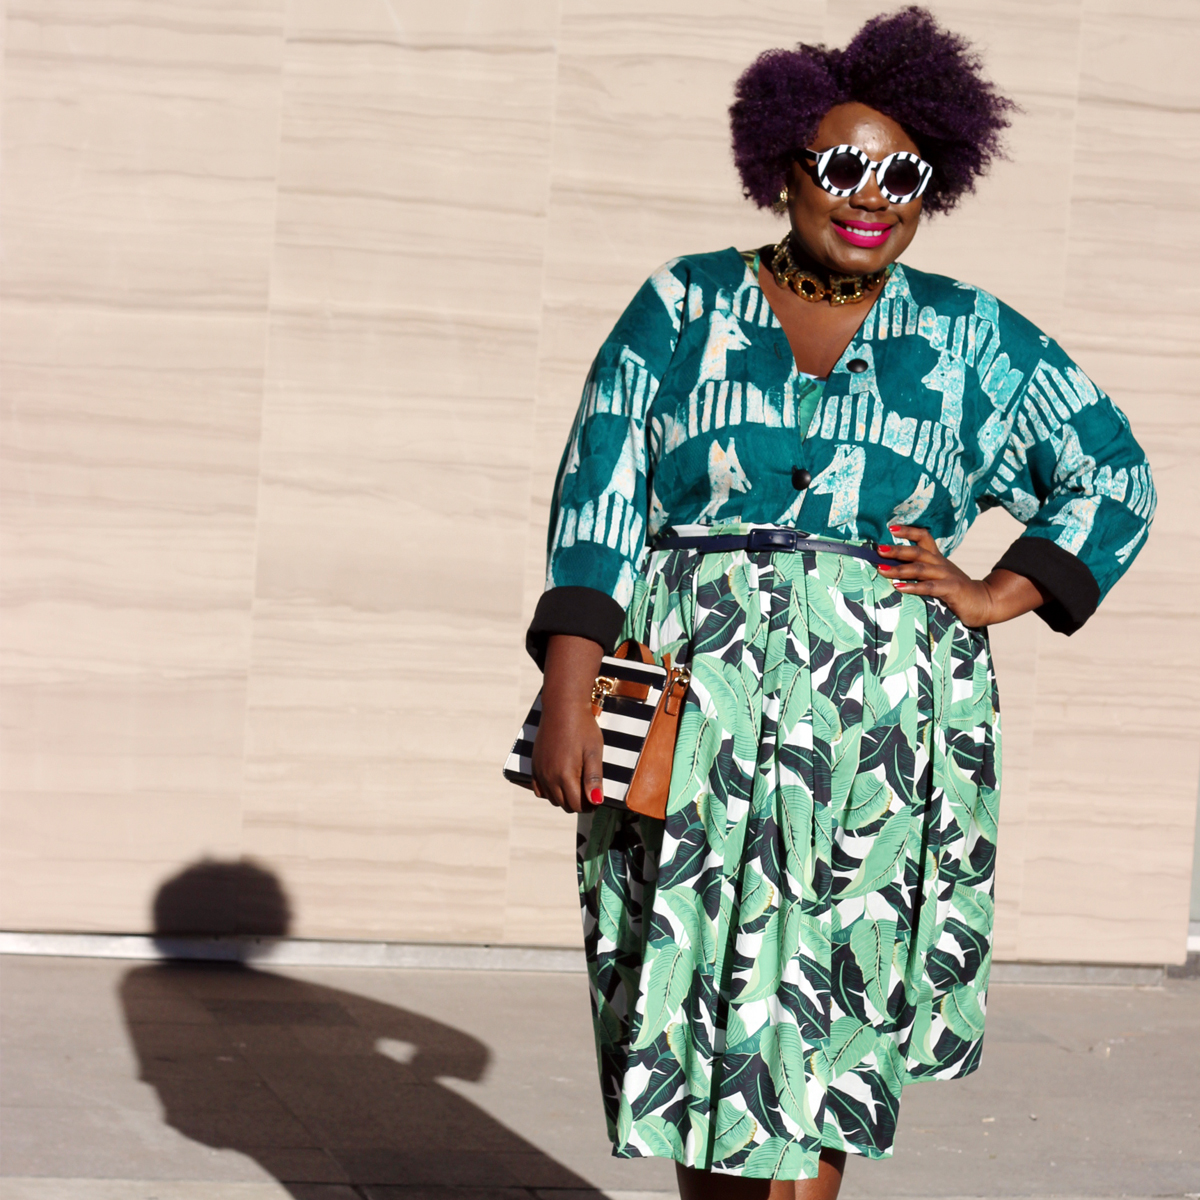 plus size style fashion week outfit fashion week street style 06